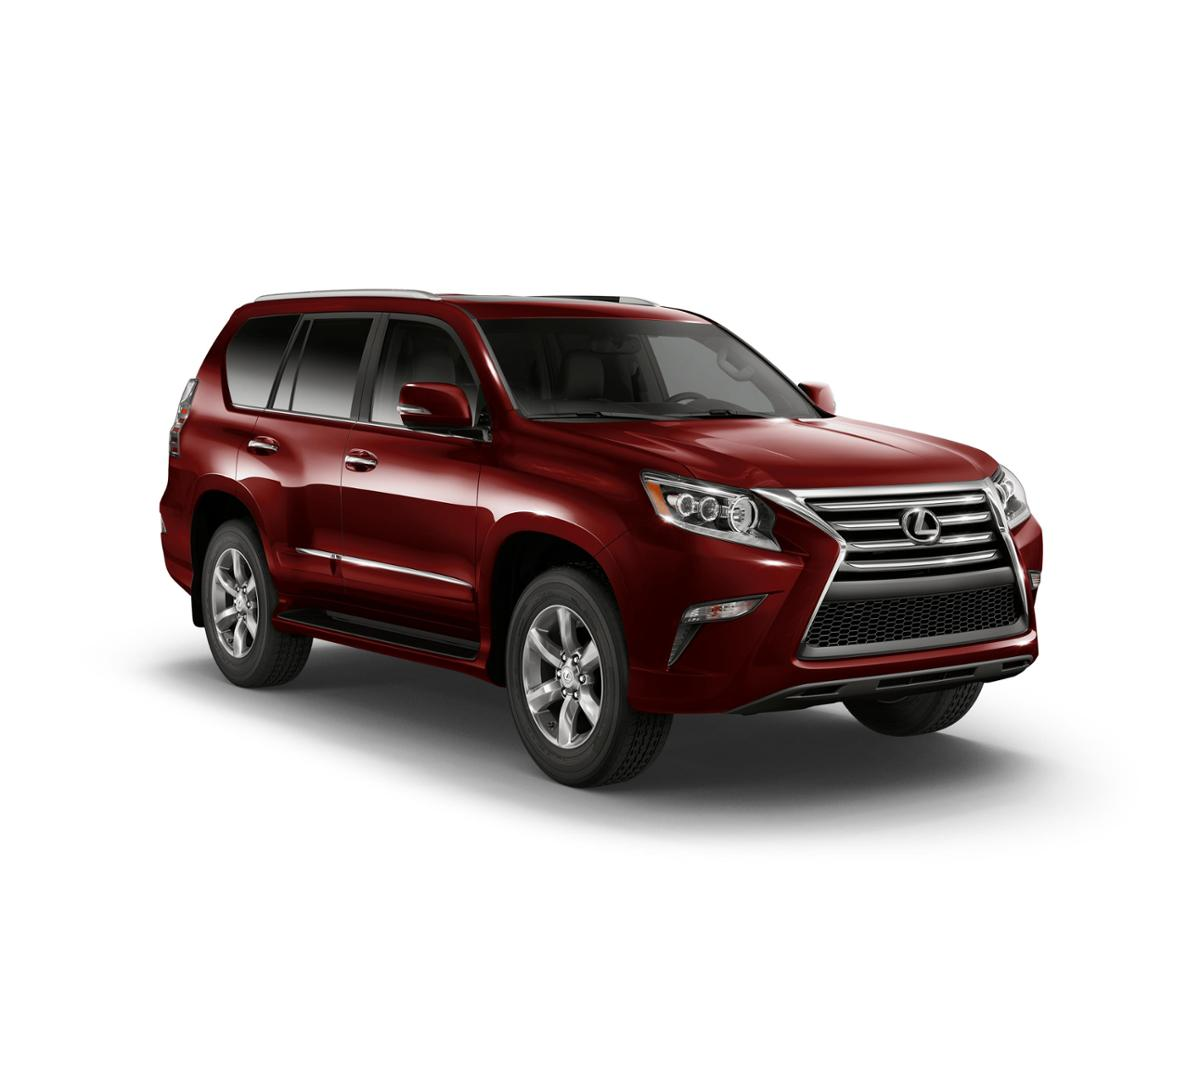 2017 lexus gx 460 cincinnati oh performance lexus h5164891. Black Bedroom Furniture Sets. Home Design Ideas